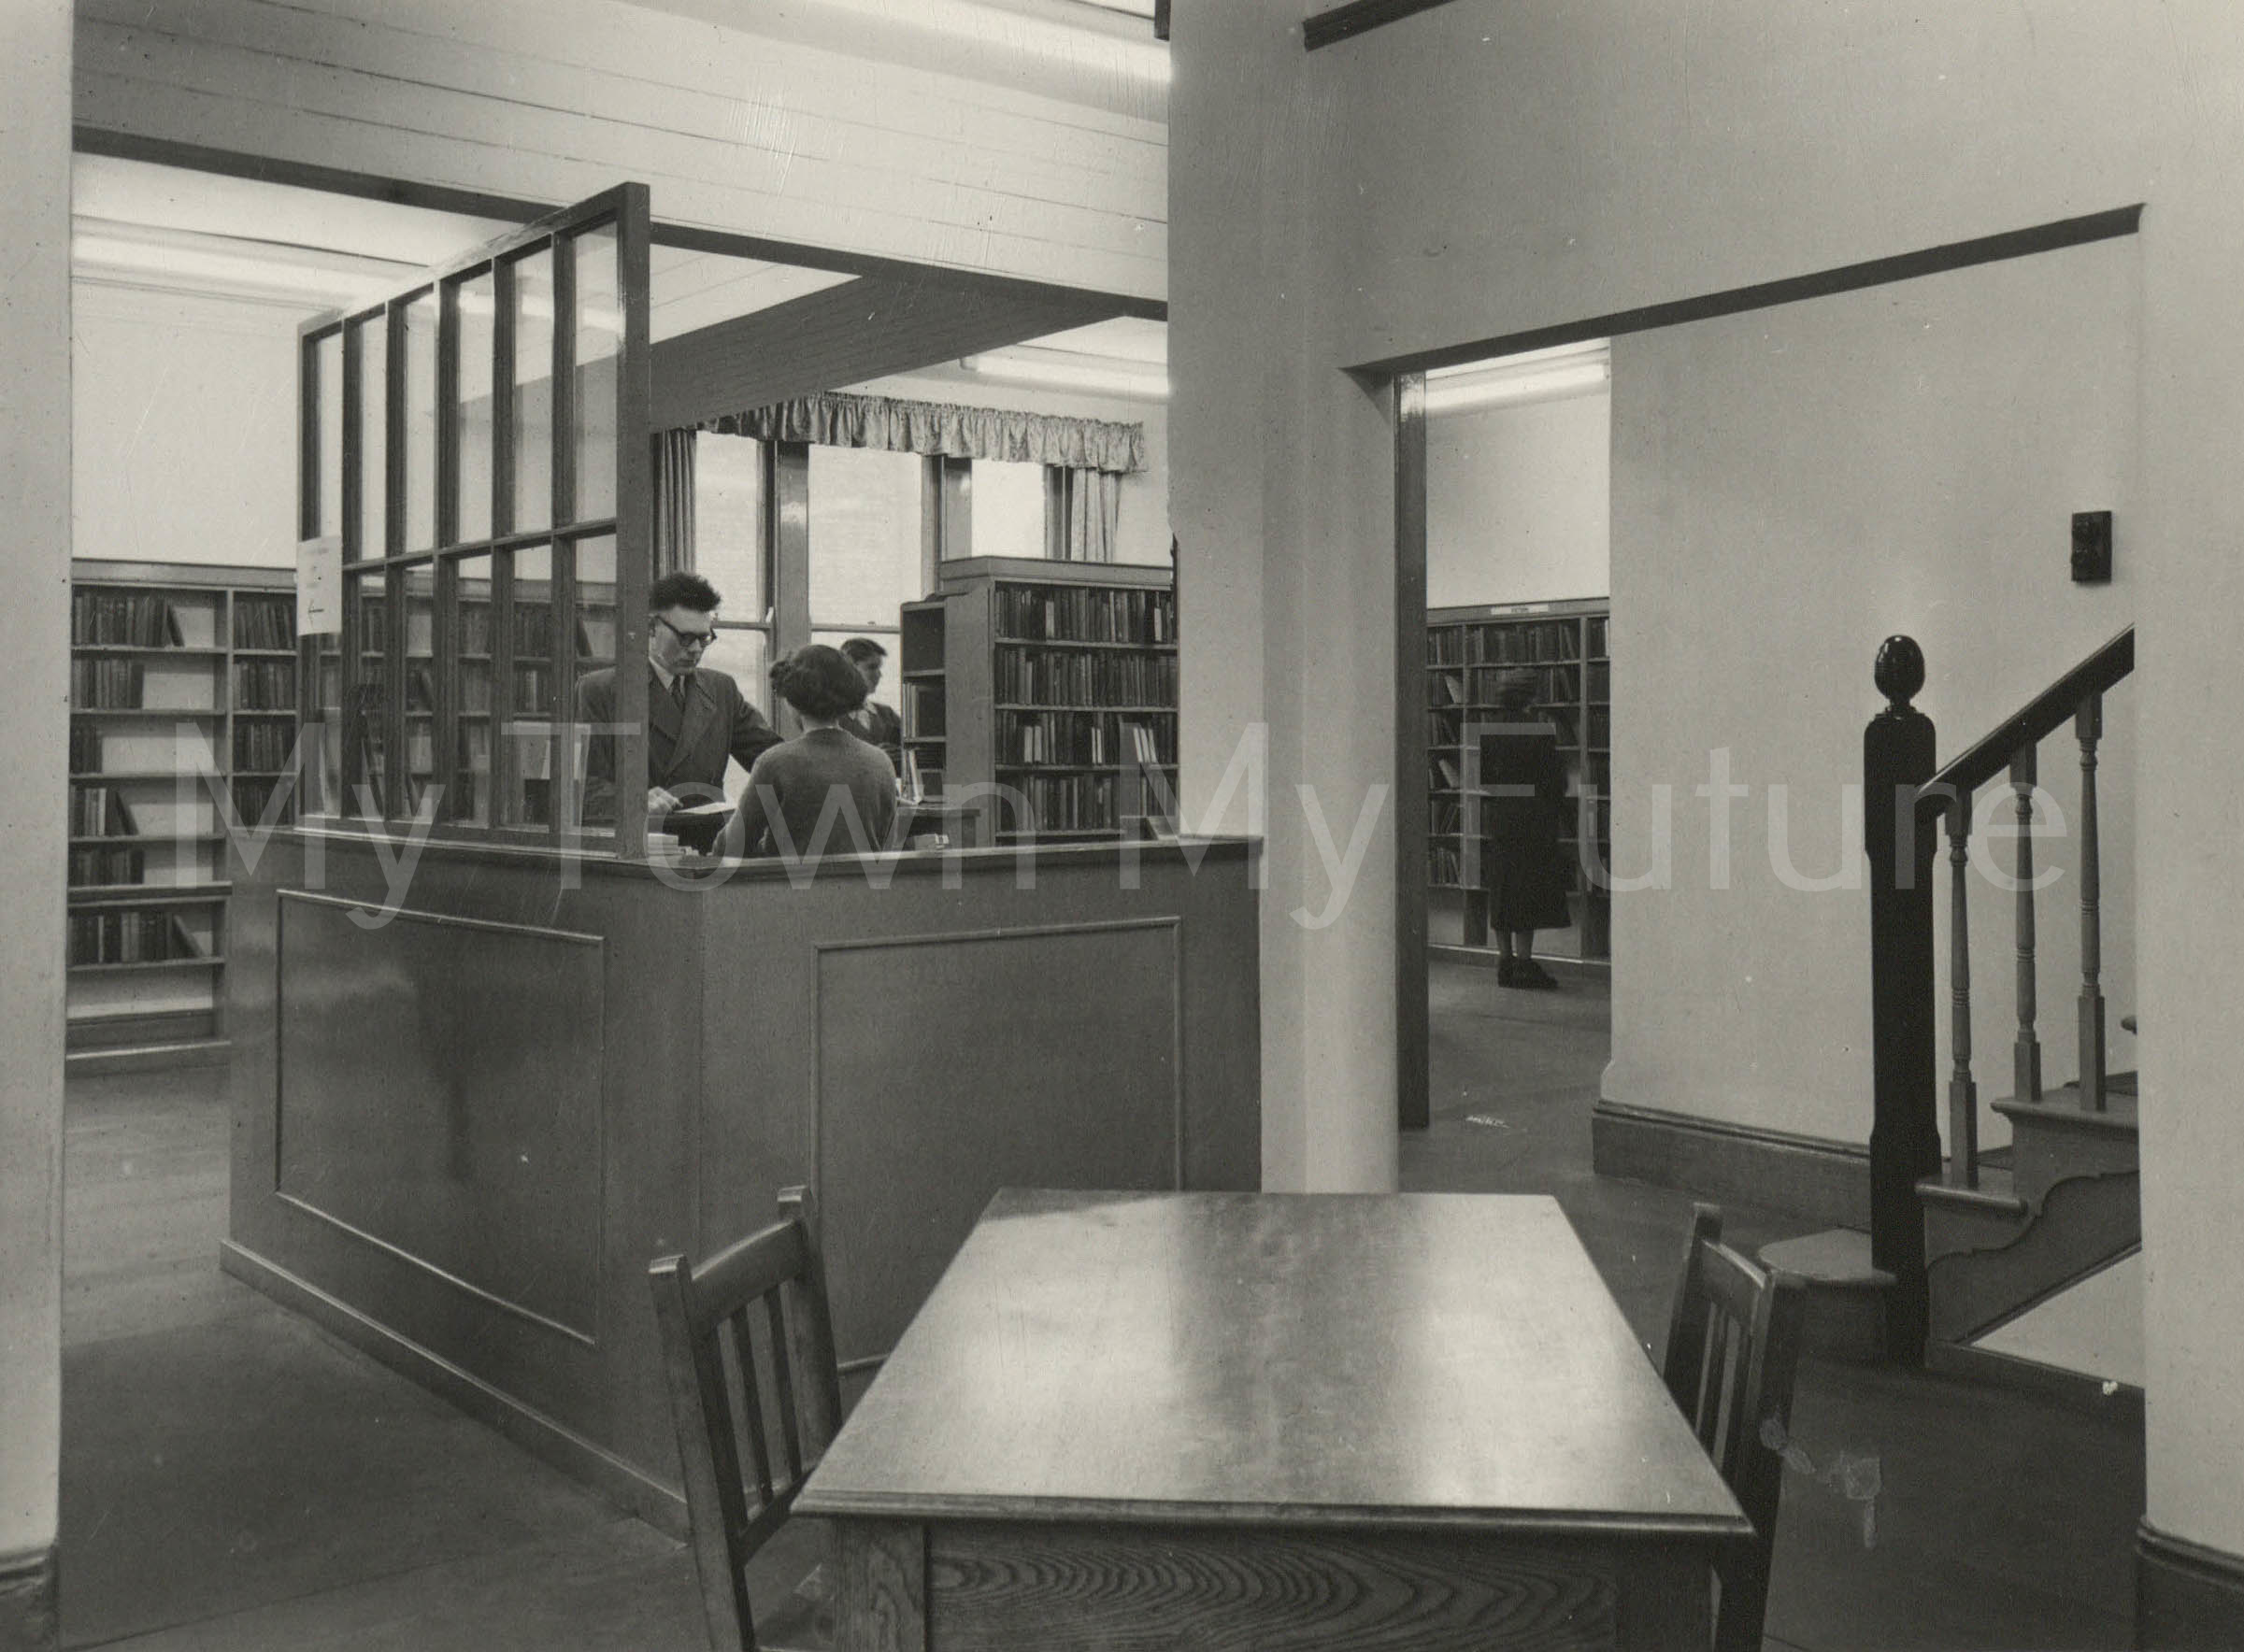 North Ormesby Library Re-Opening, 1953 - Mather's Photographers, 140 Linthorpe Road, Middlesbrough